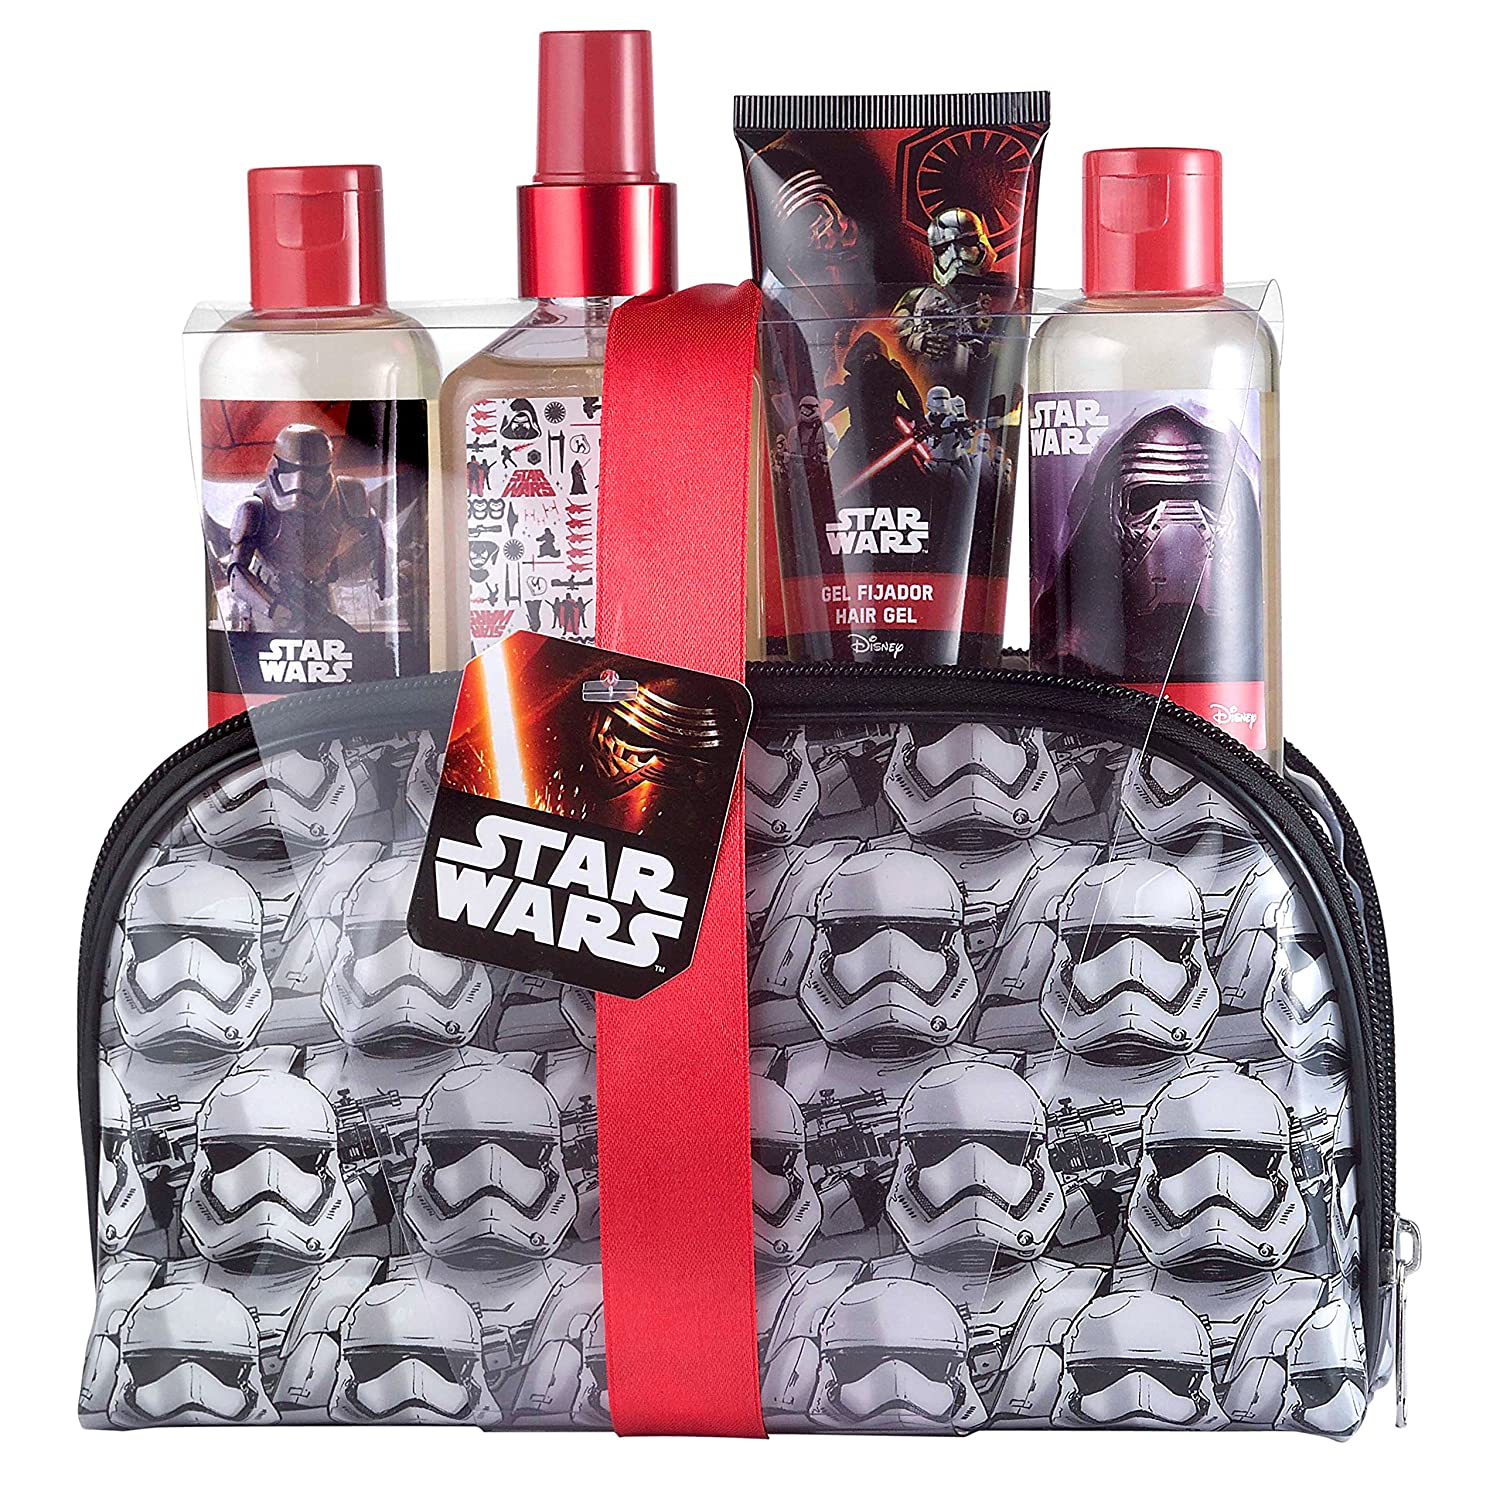 Star Wars Lote Set de Regalo - 5 Piezas P6524